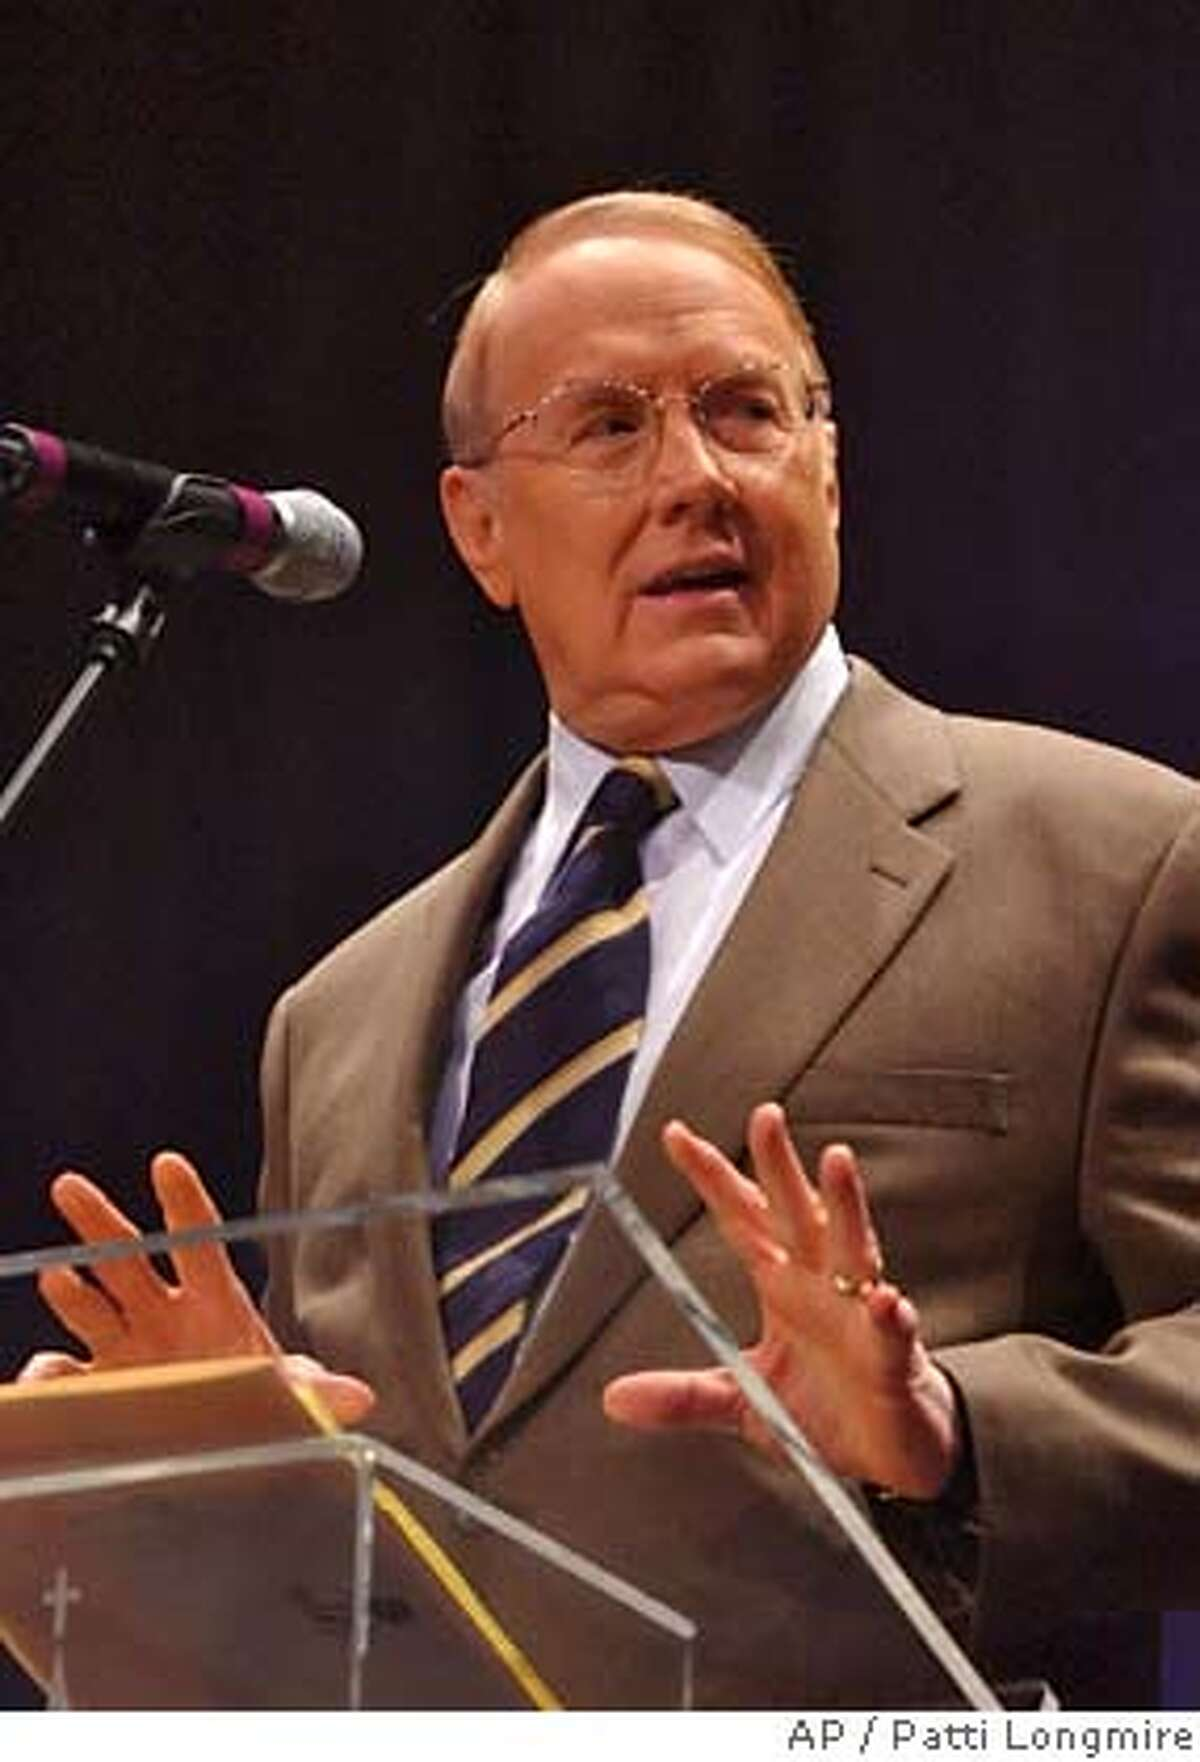 ** FILE ** Dr. James Dobson, Founder of the Focus on the Family, talks in this April 24, 2005 file photo, in Louisville, Ky. Leaders of four anti-abortion groups have accused Dobson of misrepresenting a Supreme Court decision that upheld a ban on a controversial abortion technique. In a full-page ad, Wednesday, May 23, 2007, editions of The Gazette newspaper in Colorado Springs, the group said Dobson wrongly characterized the court's April ruling as a victory for abortion foes. (AP Photo/Patti Longmire) ** APRIL 24, 2005 FILE PHOTO**